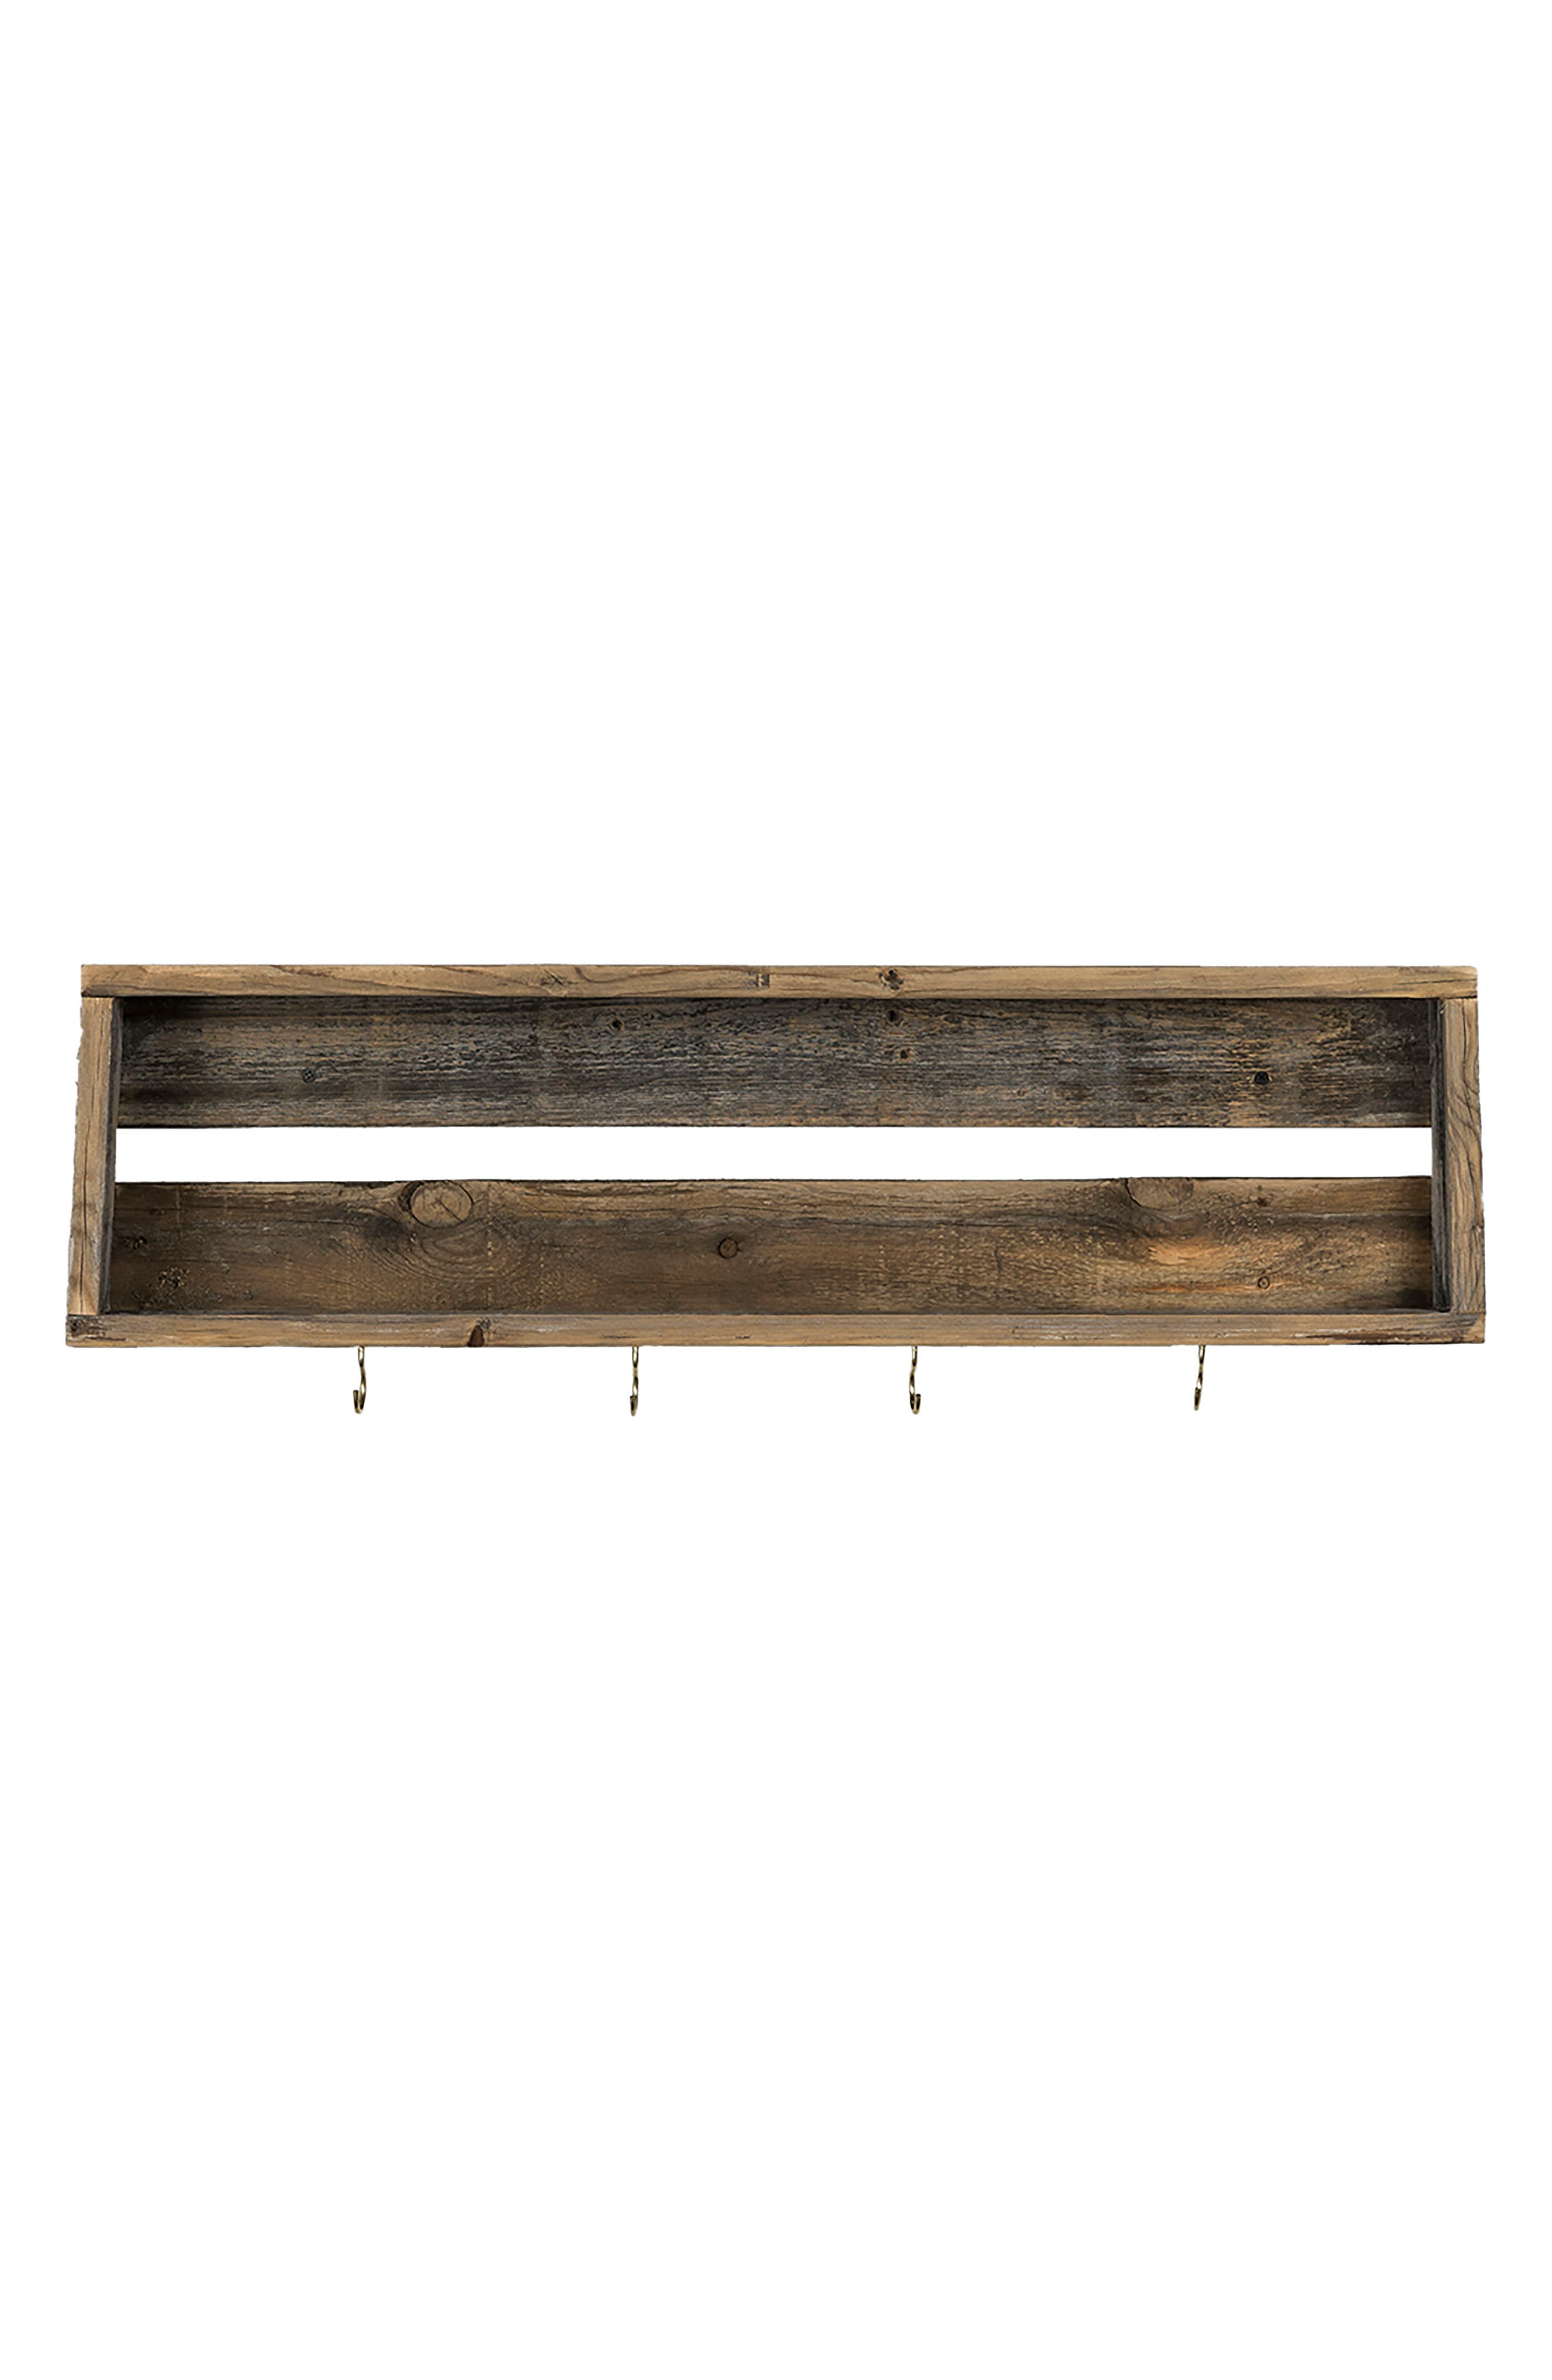 (del)Hutson Designs Repurposed Wood Shelf with Hooks